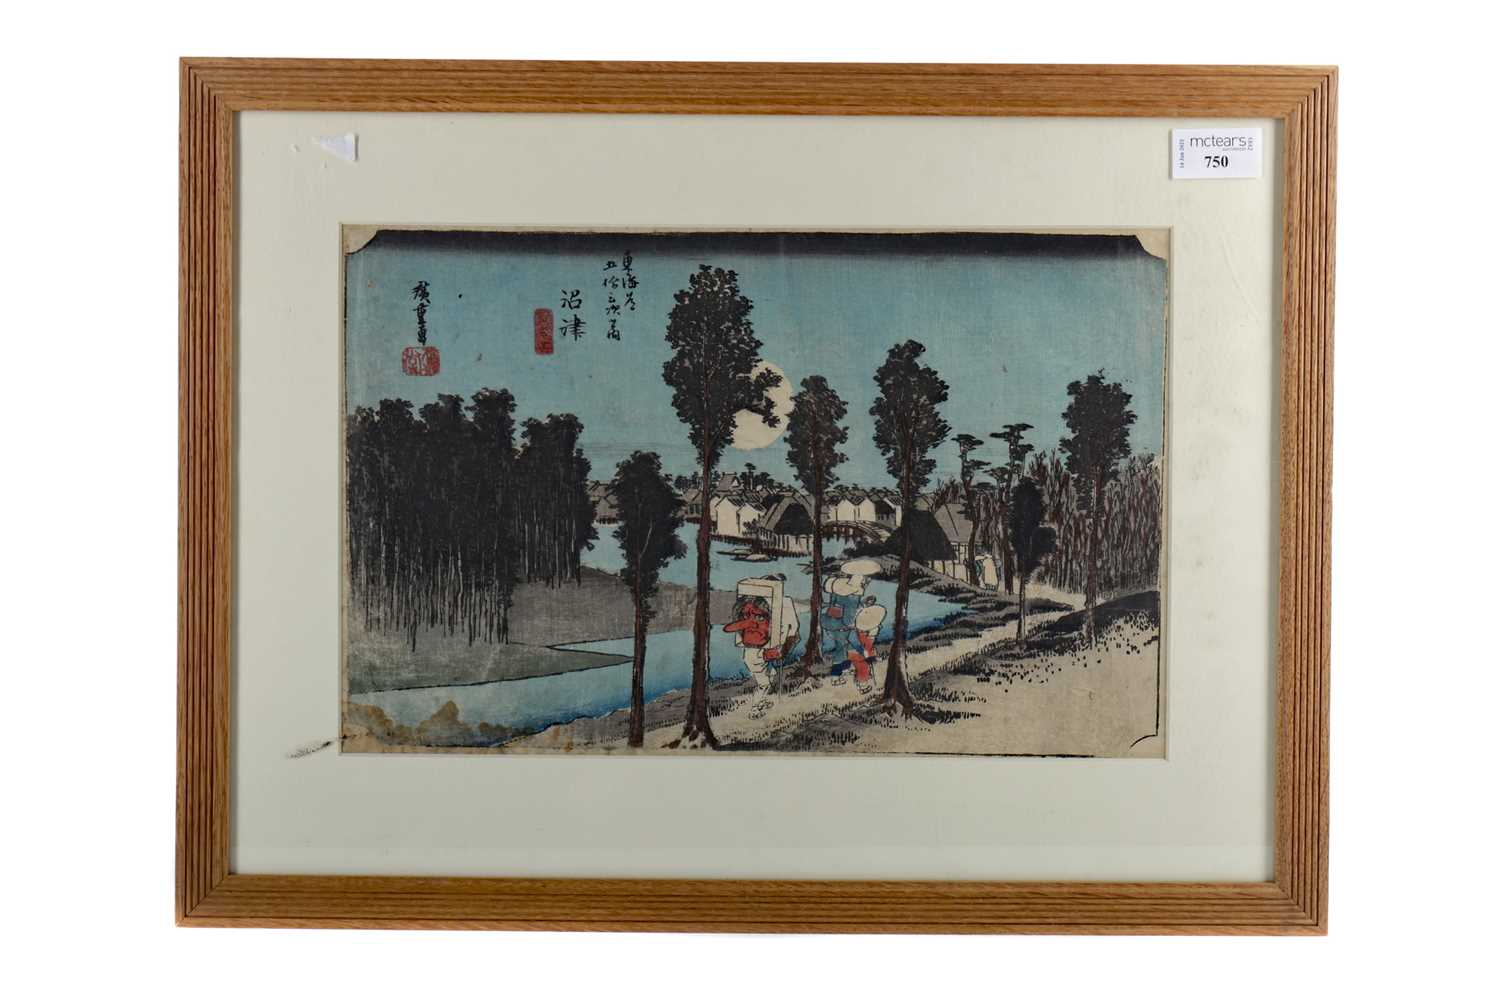 Lot 750 - A JAPANESE WOODBLOCK PRINT